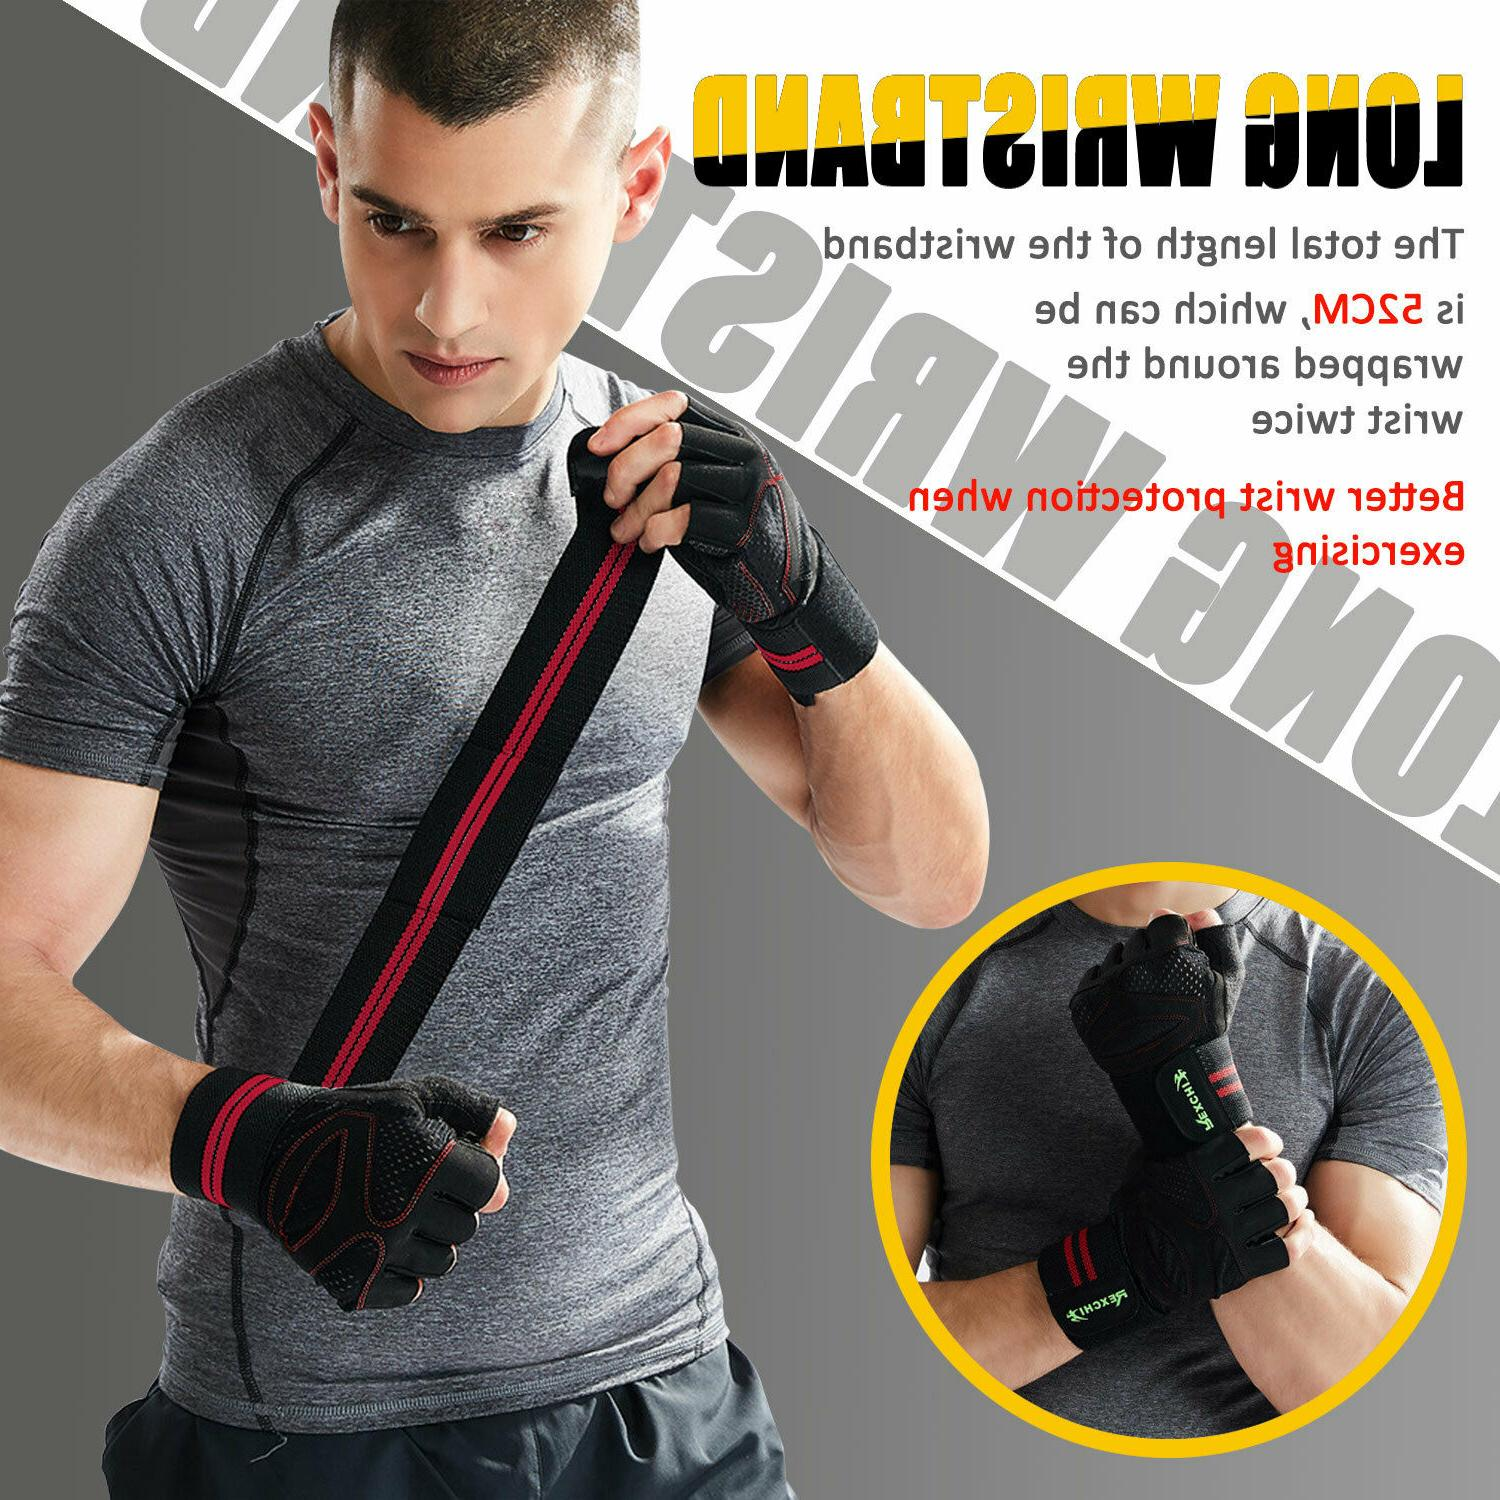 Mens Gym Gloves With Wrap Support For Weight Lifting